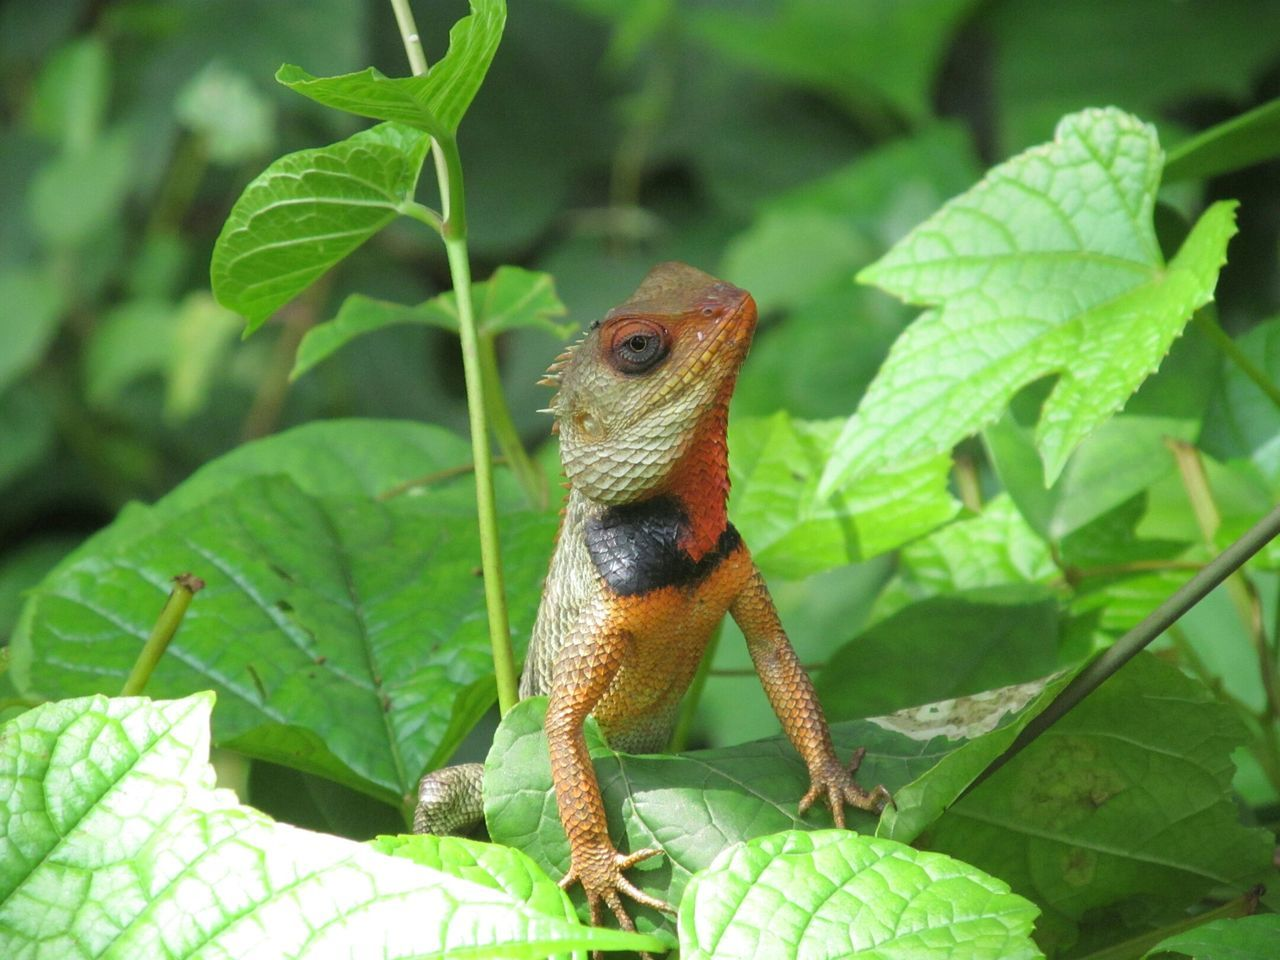 Reptiles Fauna Nature_collection Garden Lizard Nature Red Lizards